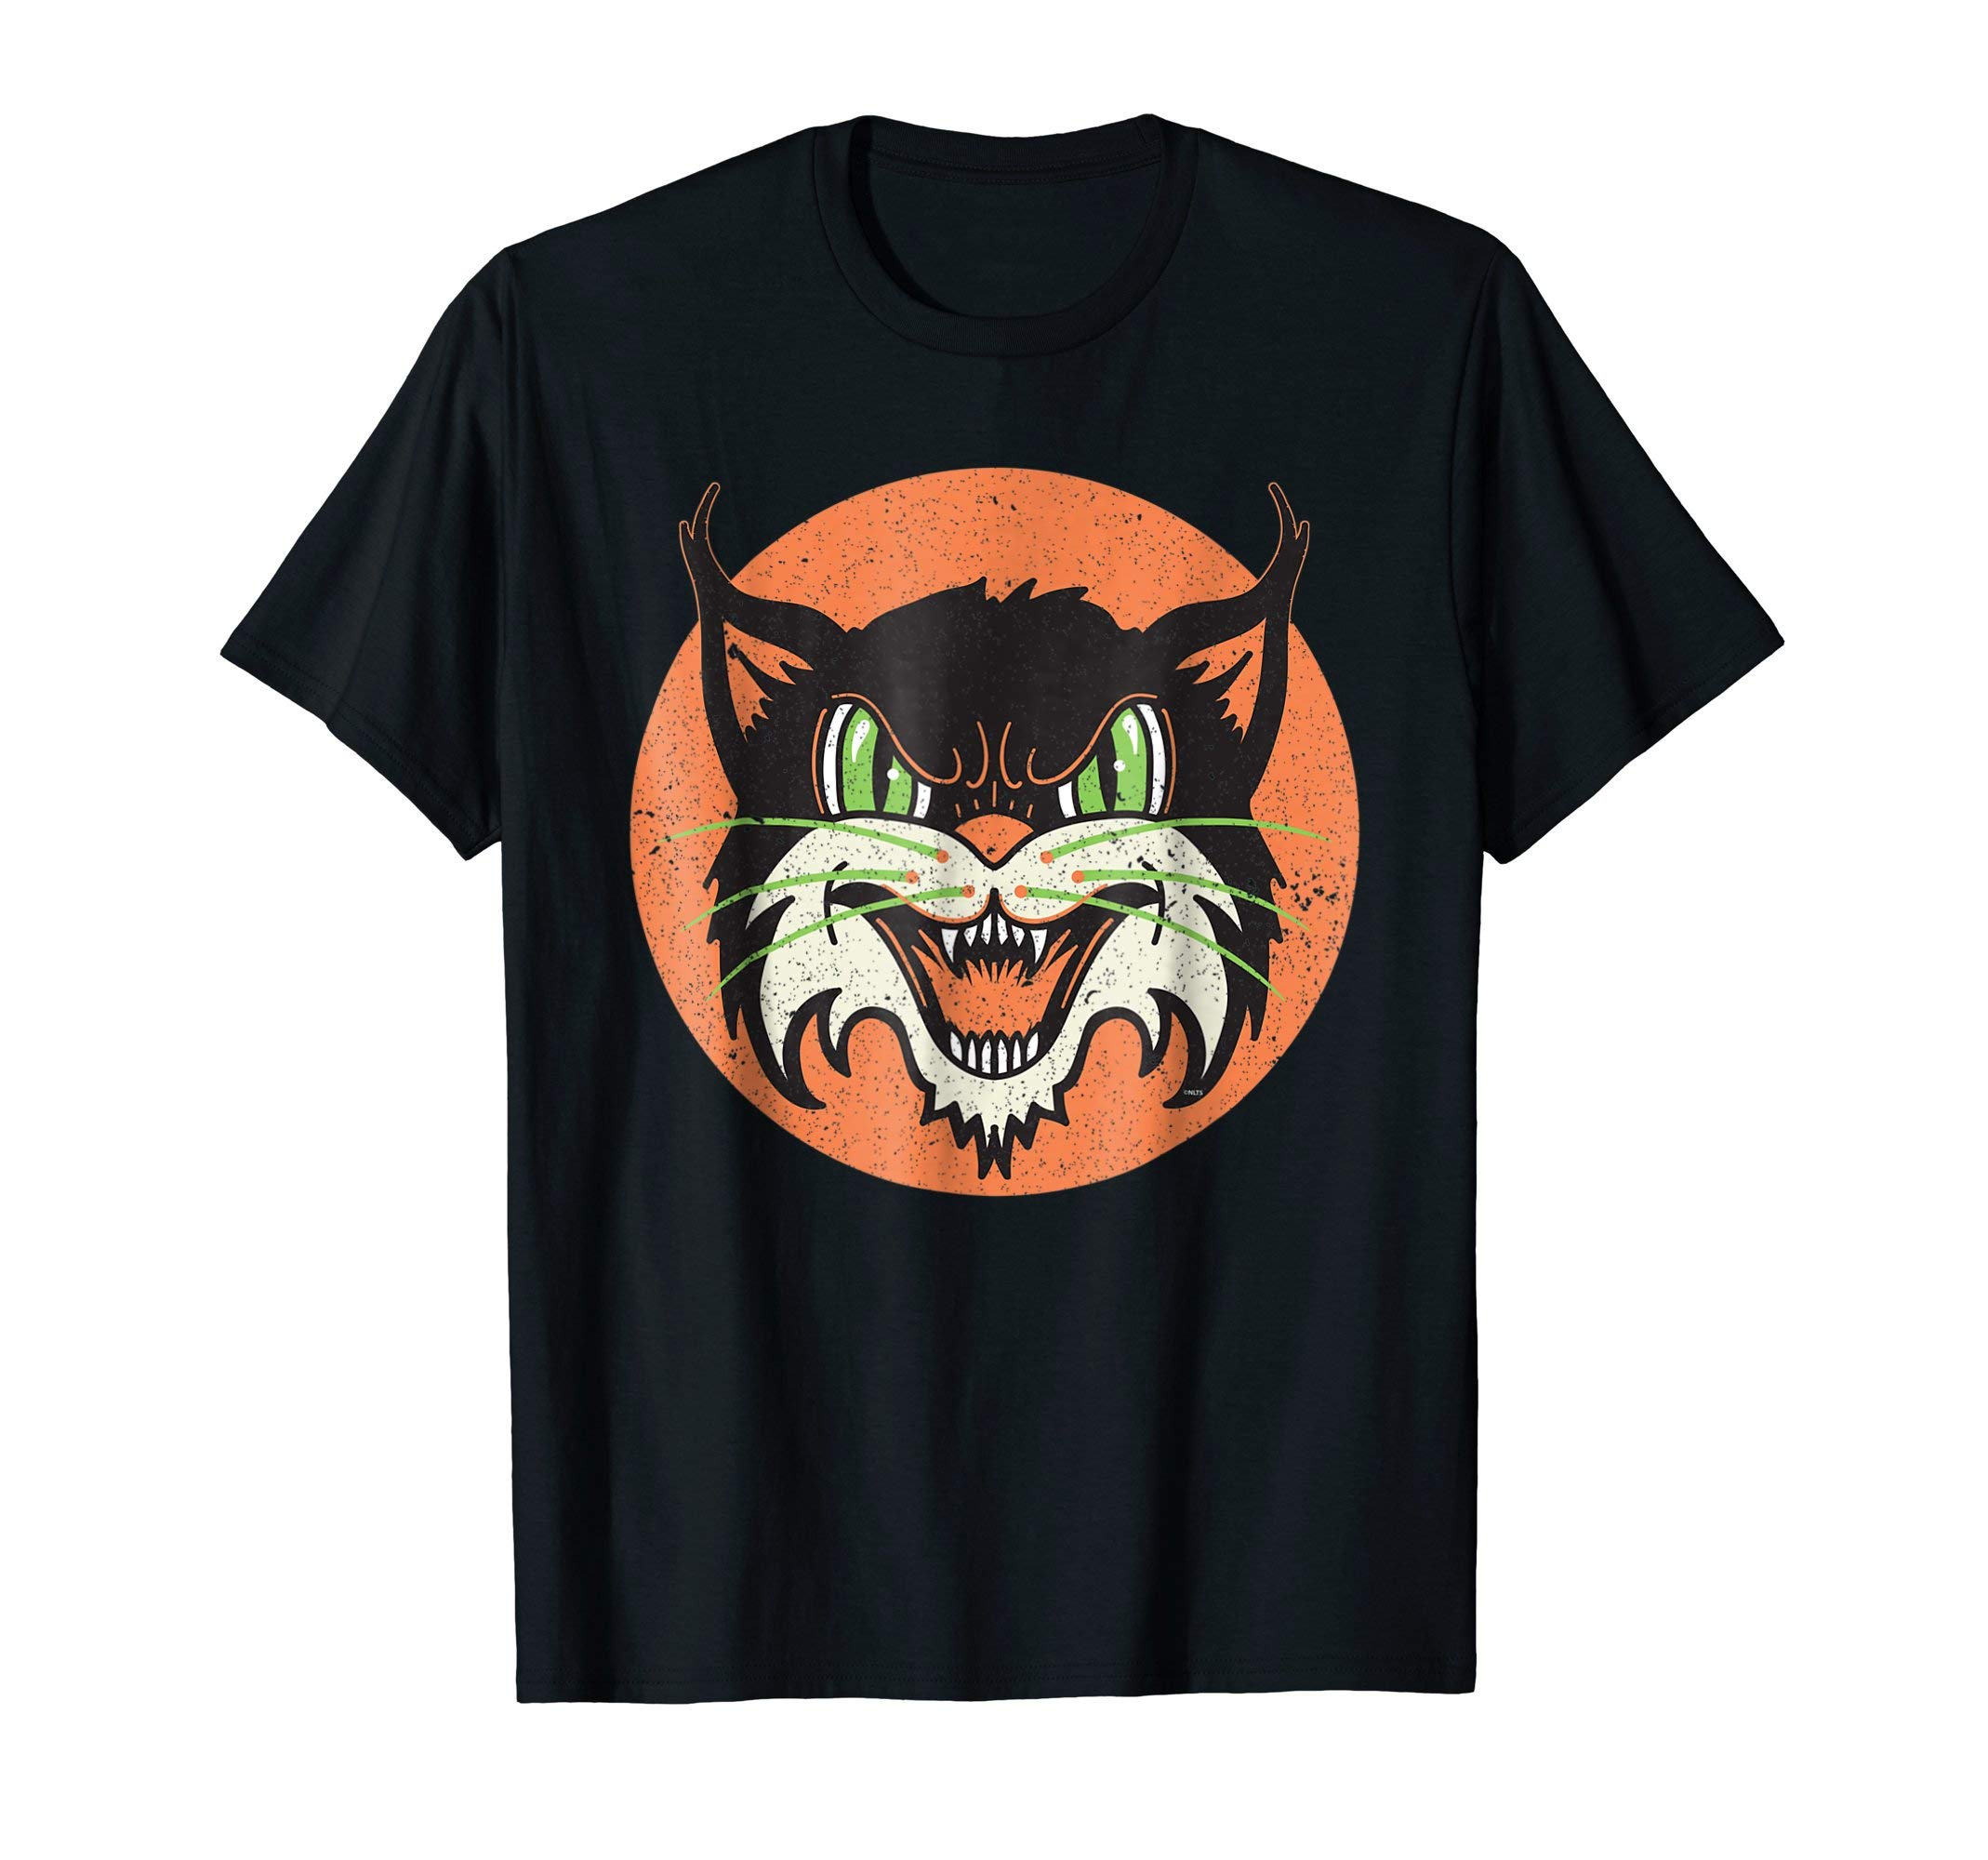 Angry-Cat-Face-Old-School-Shirt-Gifts-T-Shirt-Tee